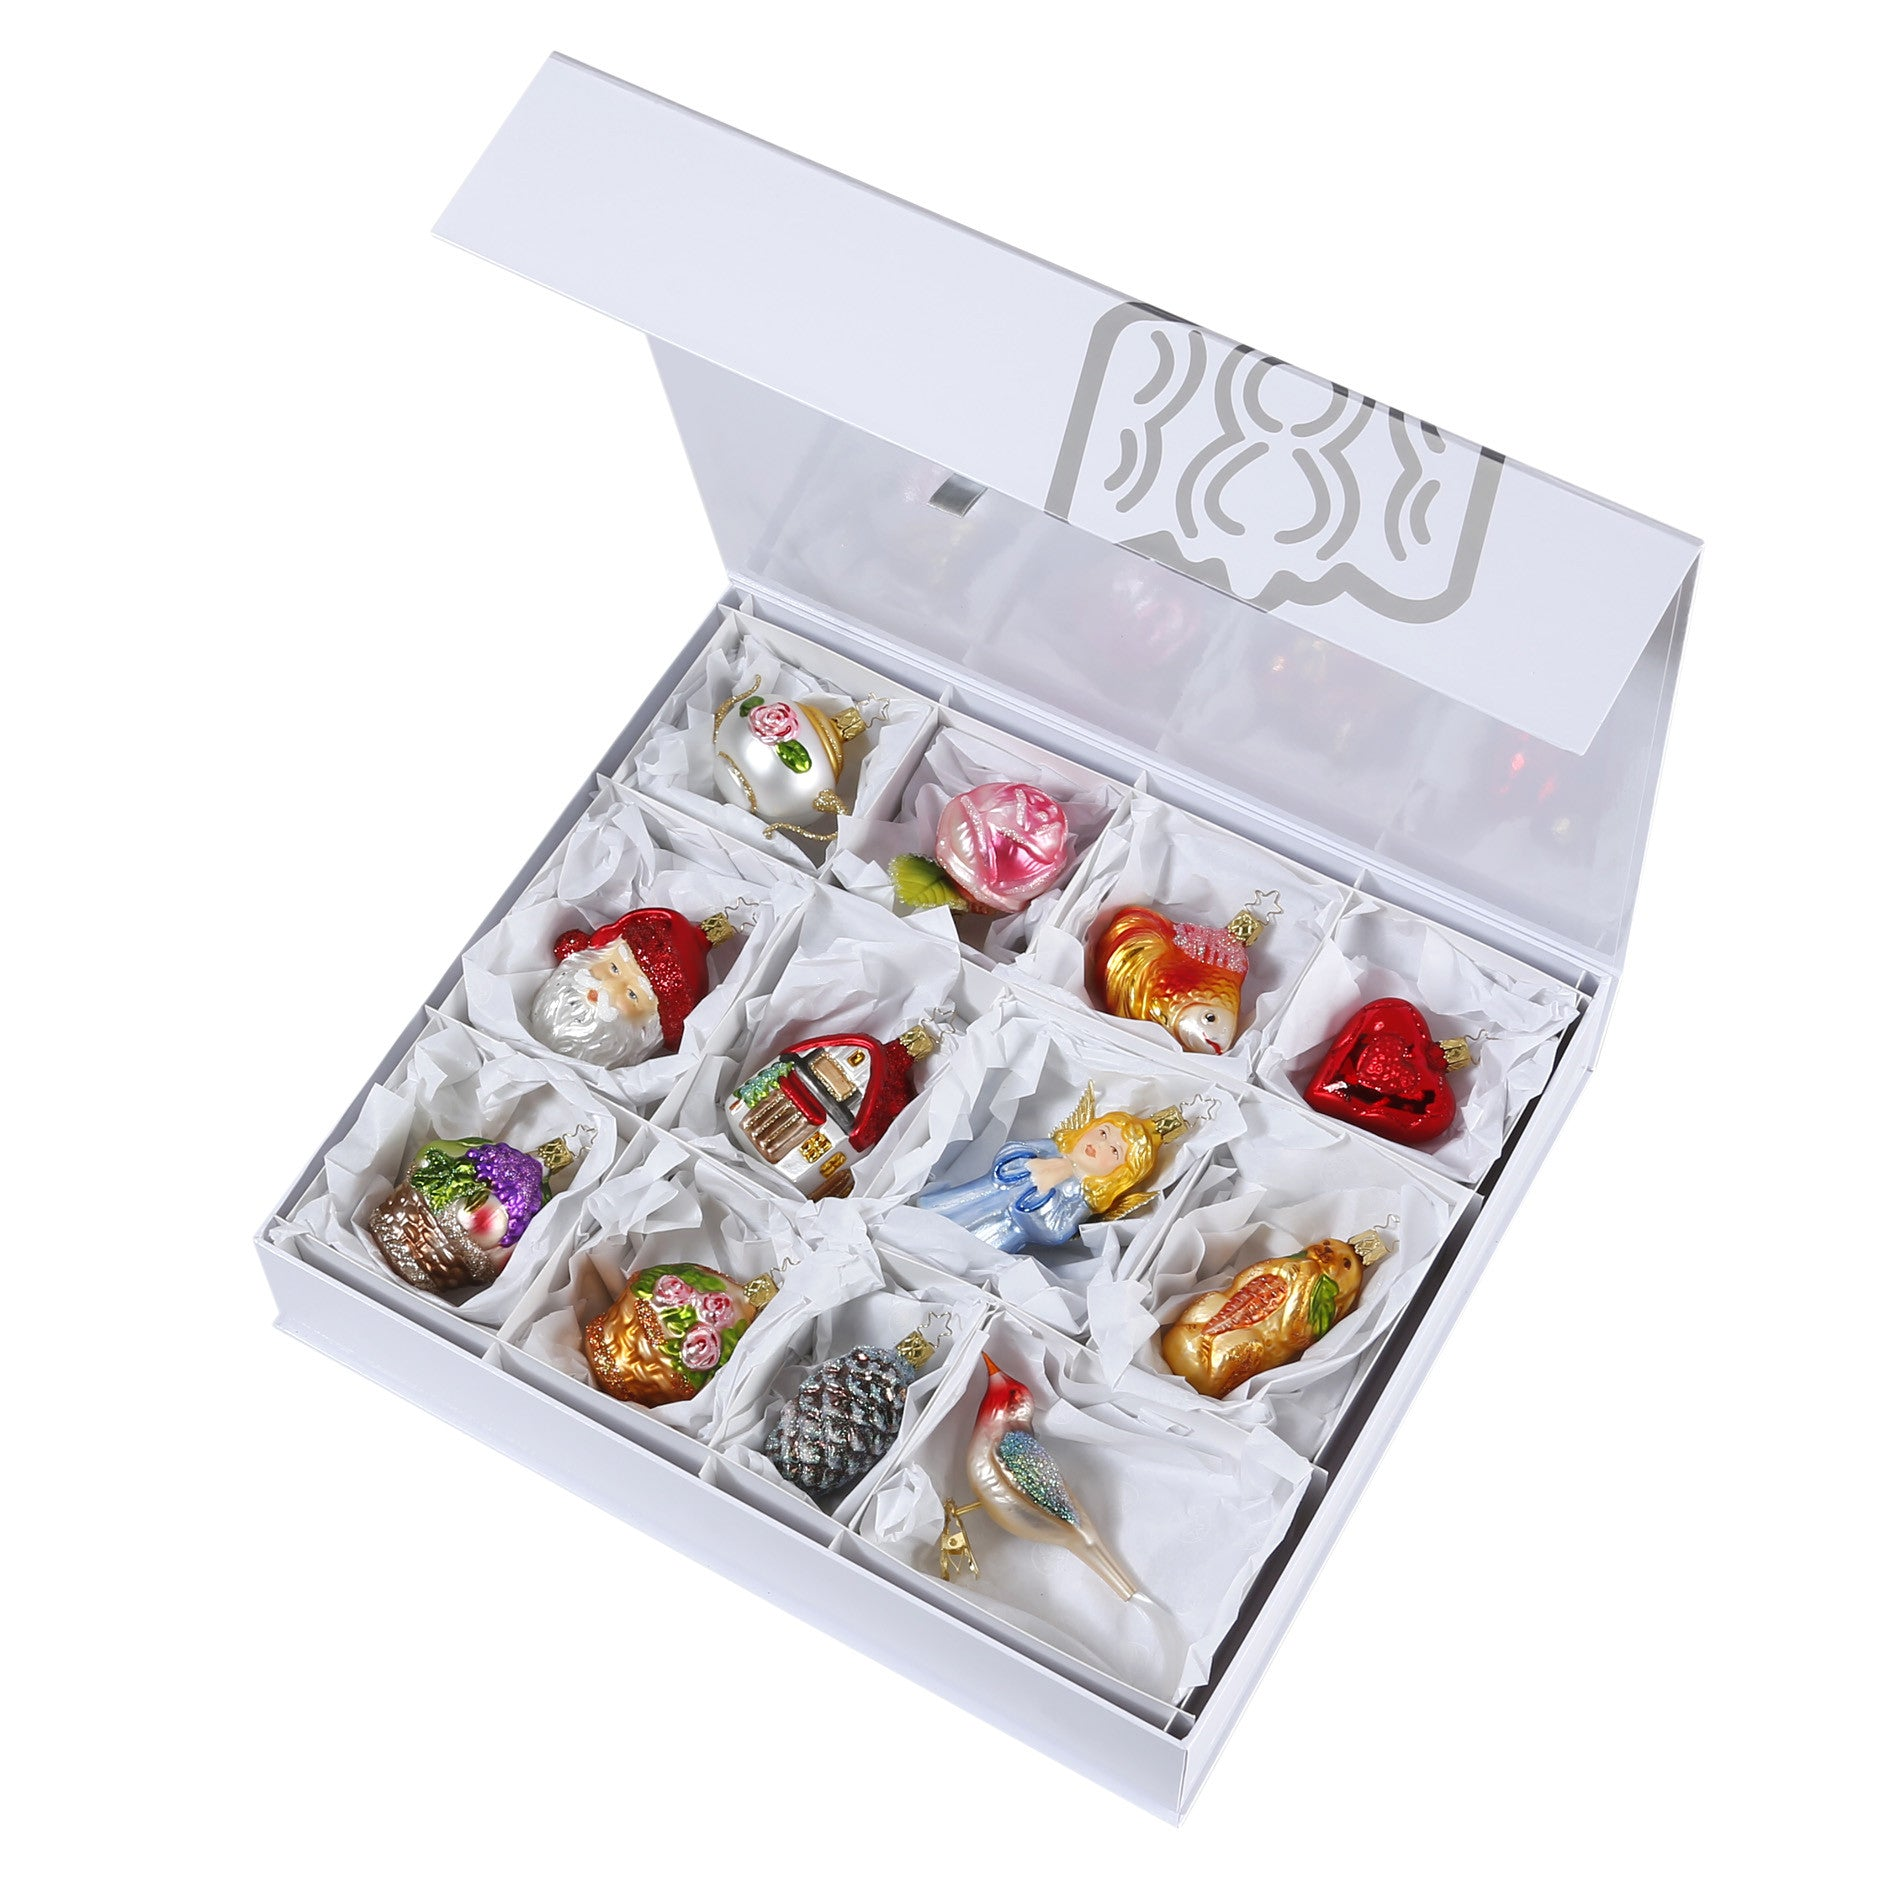 Bridal Collection - Full Size - 12 Ornaments - Presentation Box